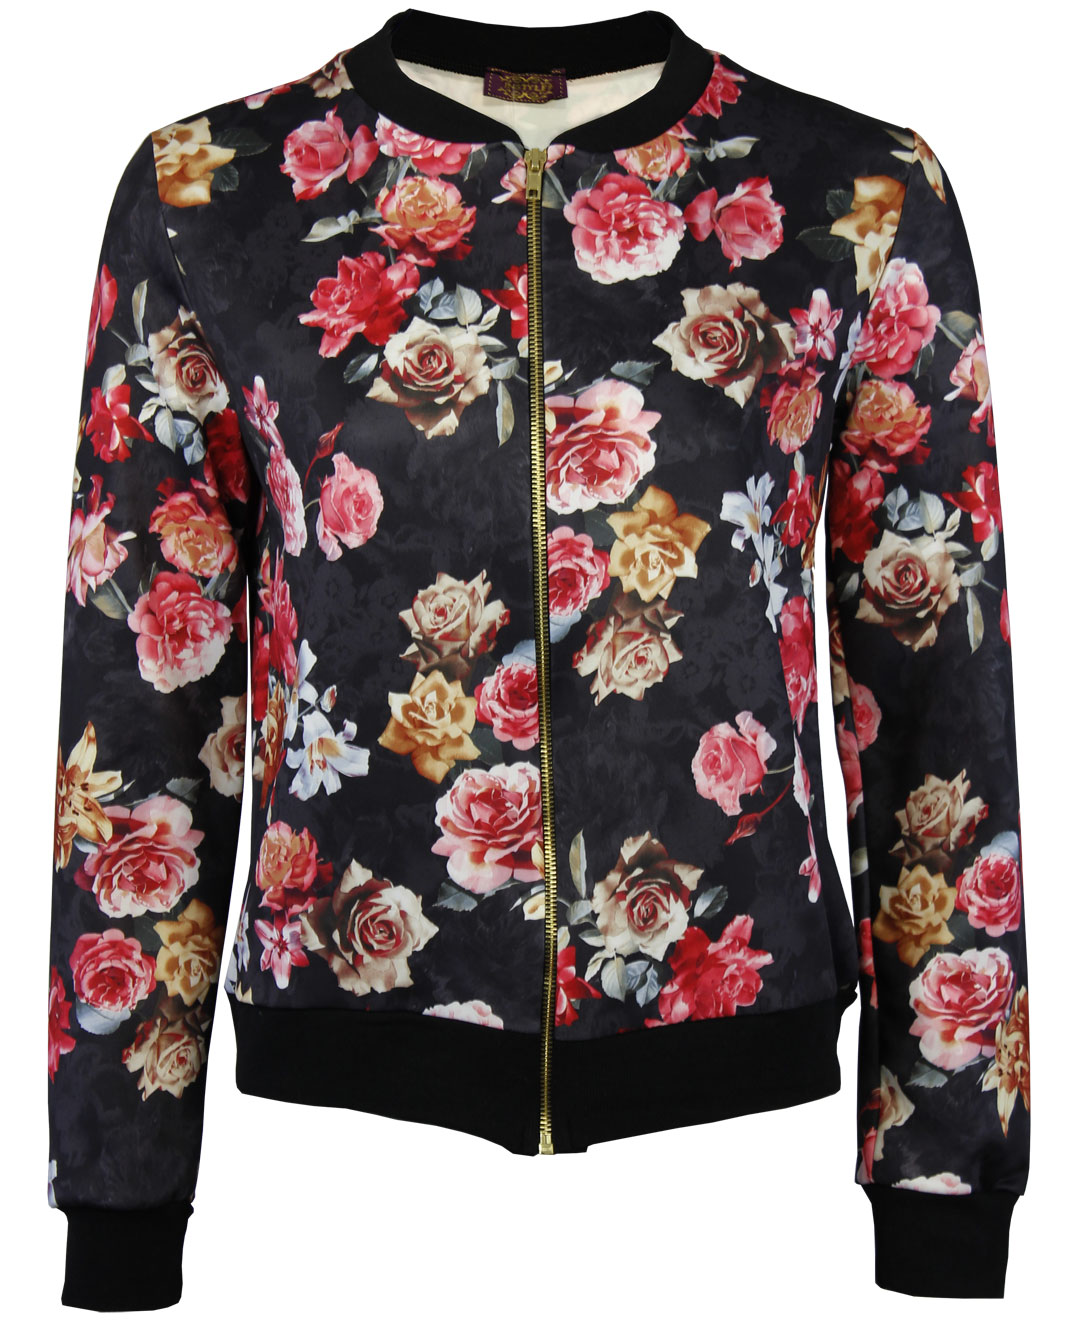 LADIES VINTAGE AUTUMN FLORAL PRINTED COAT WOMENS CROP BOMBER BIKER JACKET | eBay